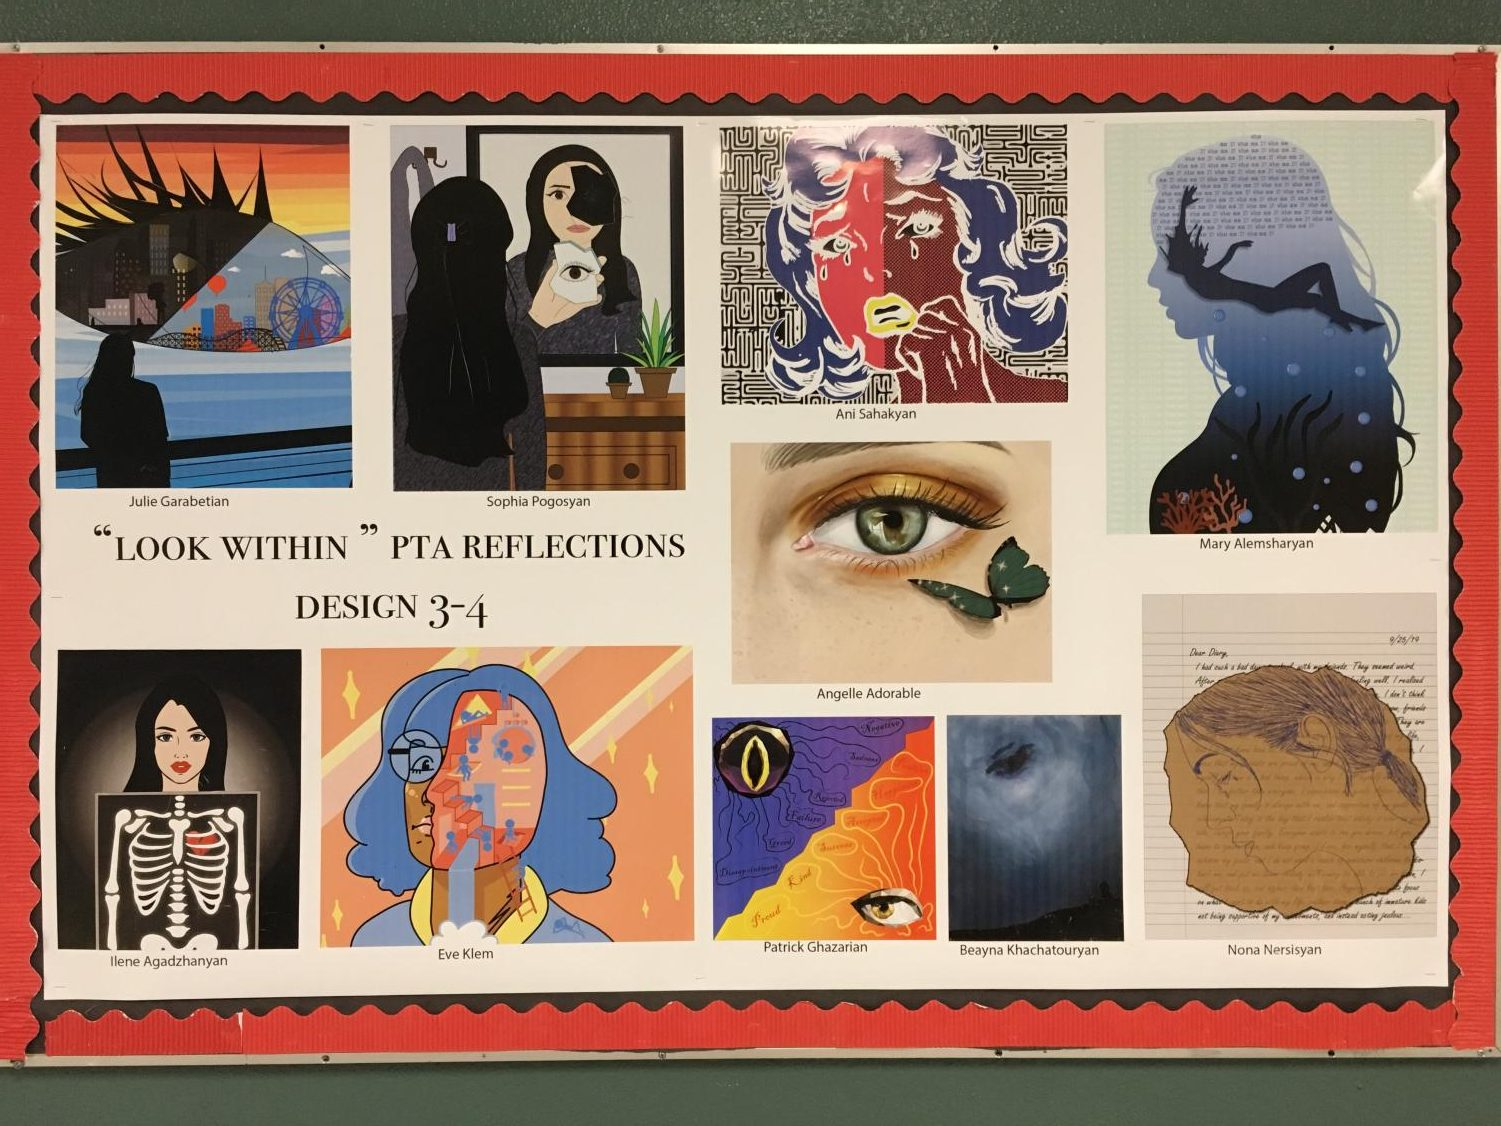 A collage of entries for the Reflections program from Nersisyan's class. Her entry can be seen at the bottom right.